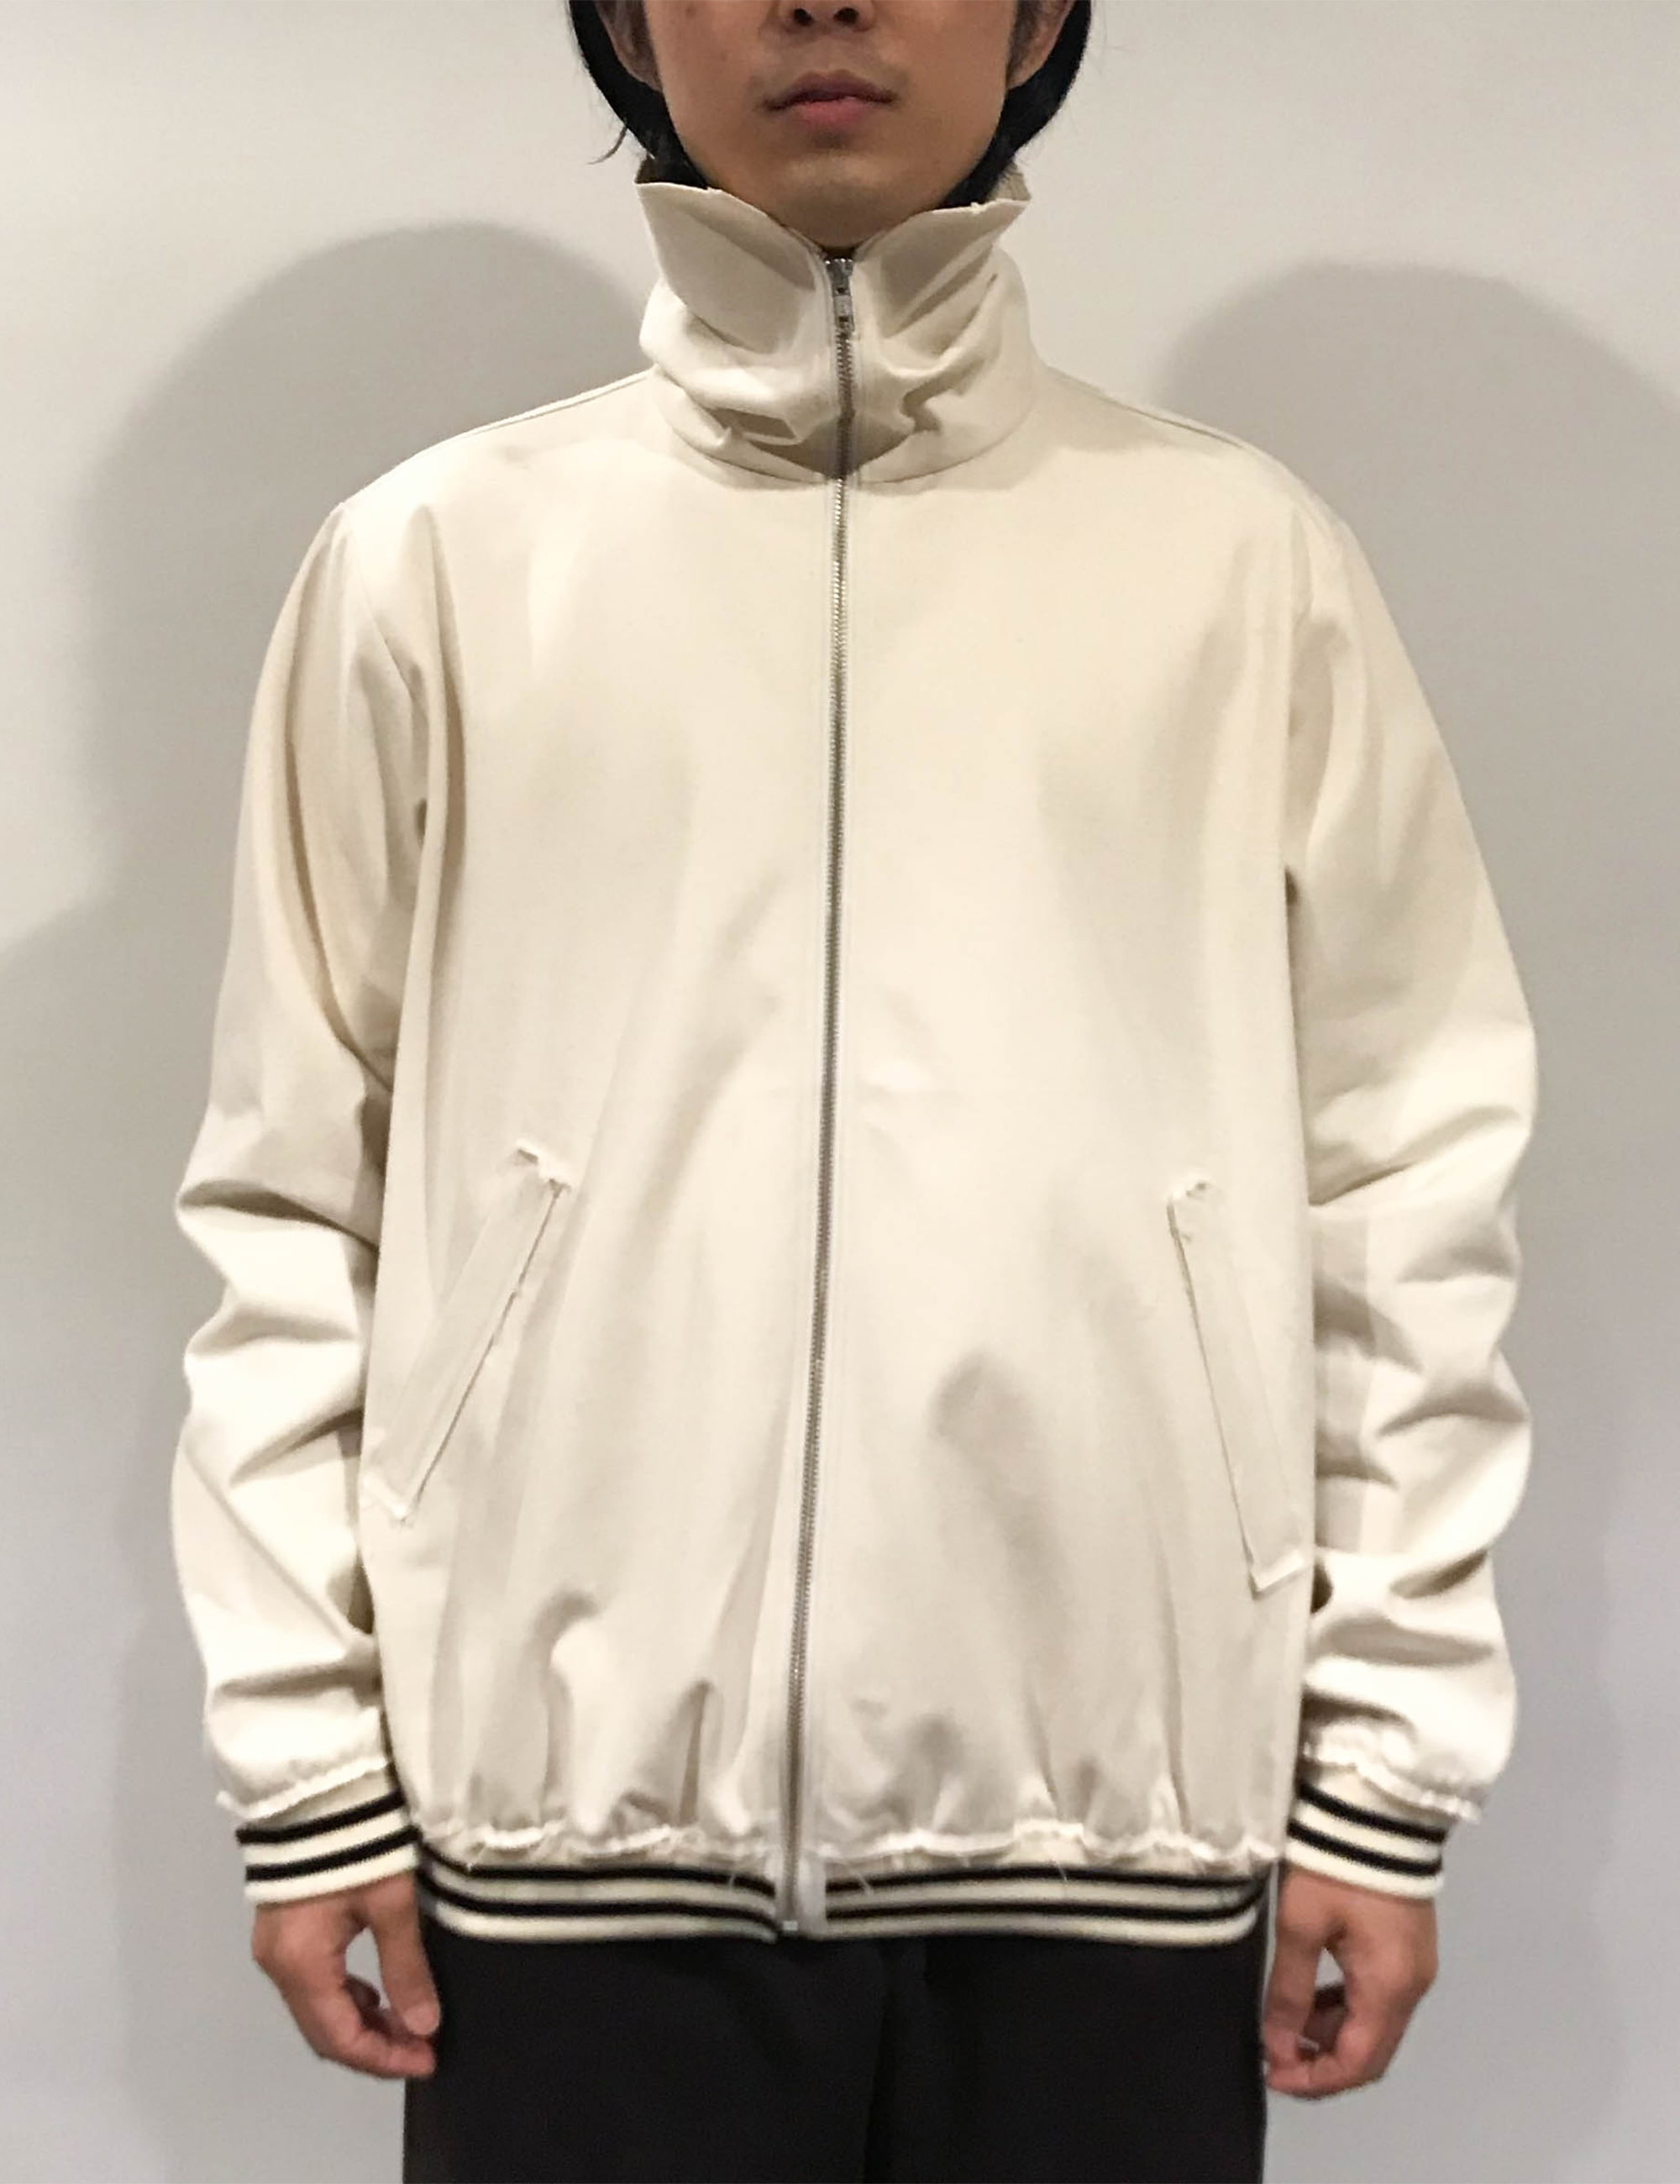 RESEARCH SHIPPER MANS JACKET CANVAS OFF-WHITE